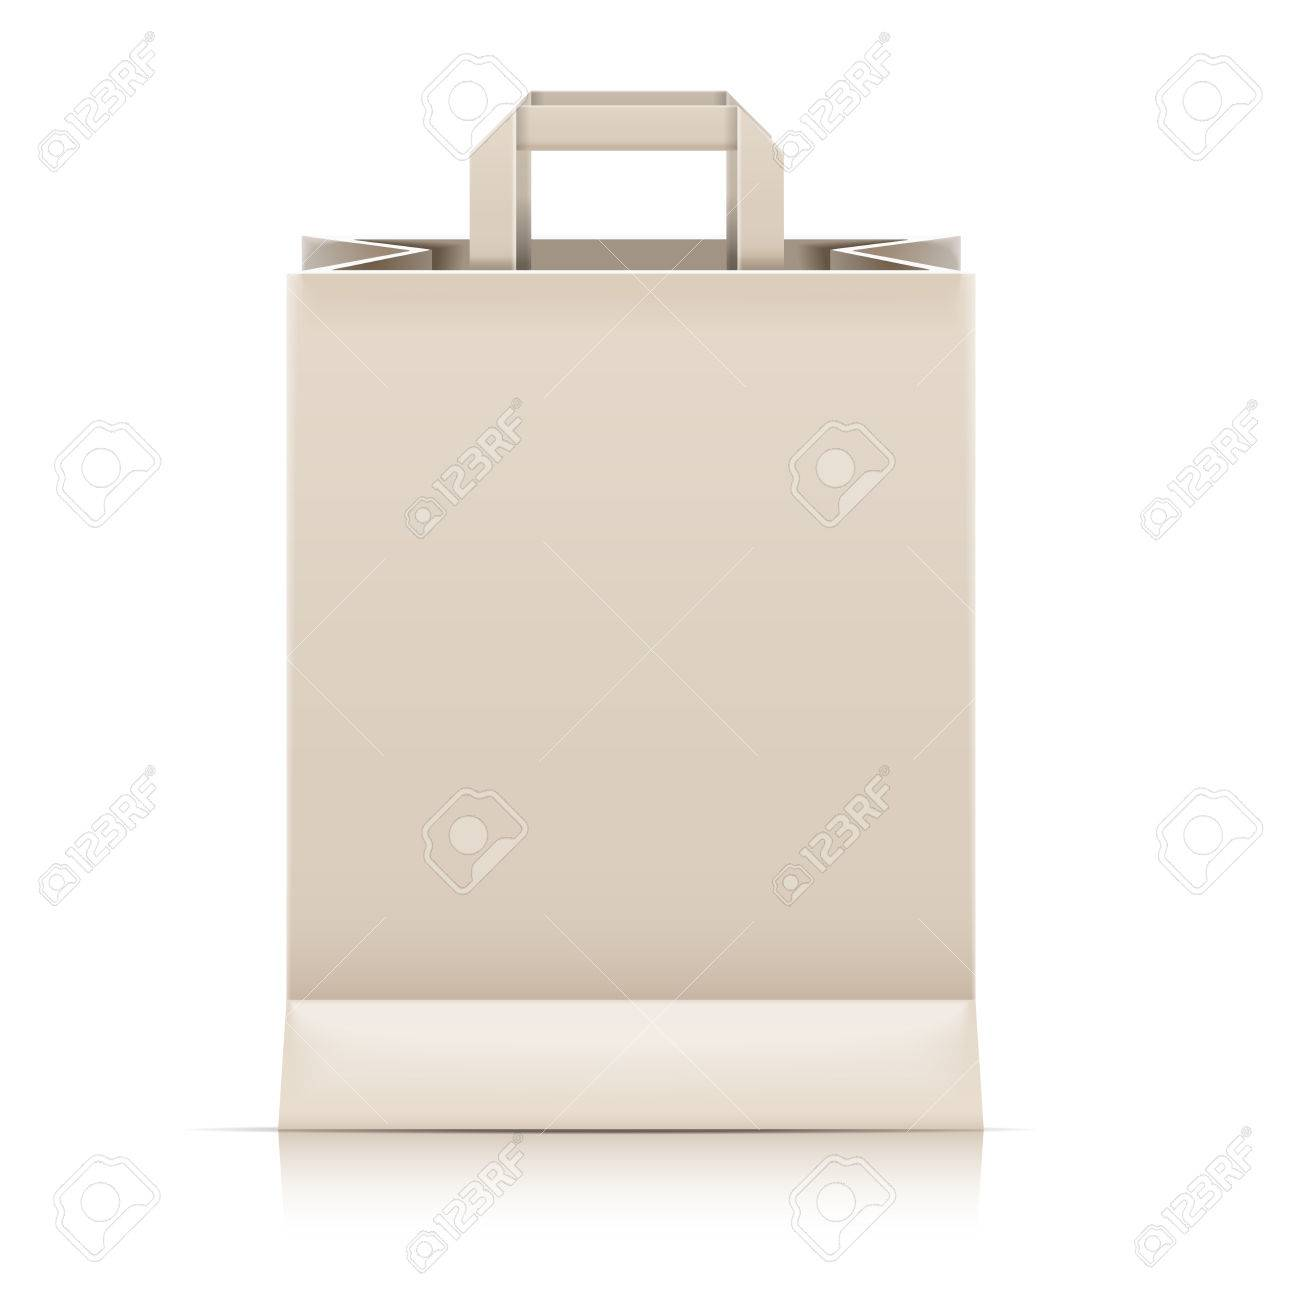 detailed illustration of a blank paperbag template vector royalty